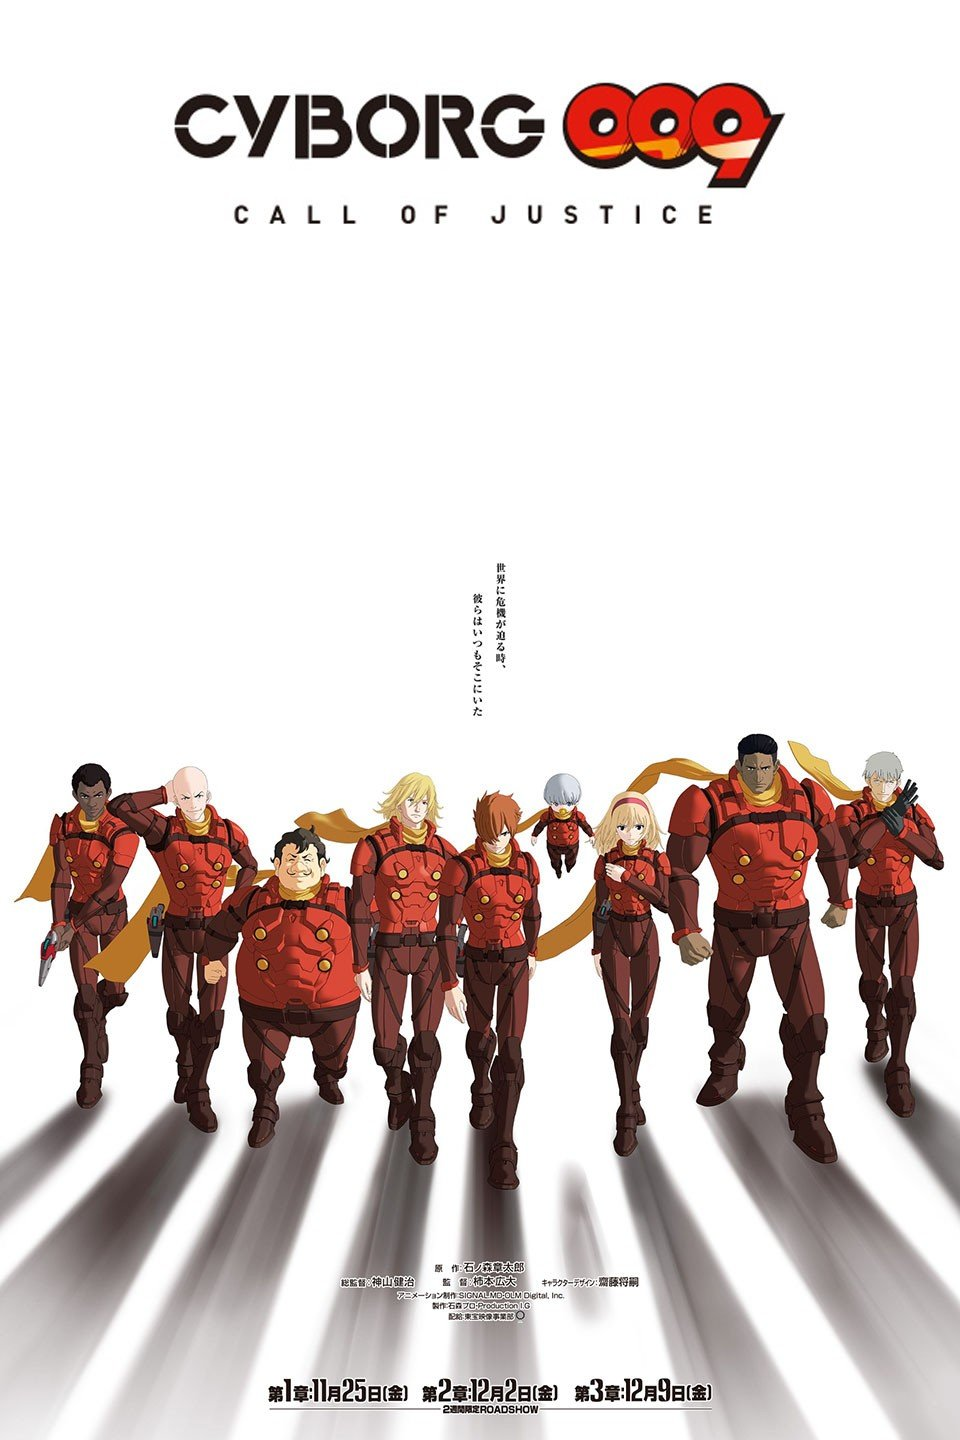 CYBORG009 CALL OF JUSTICE 第1章 人造人009 CALL OF JUSTICE 第1章